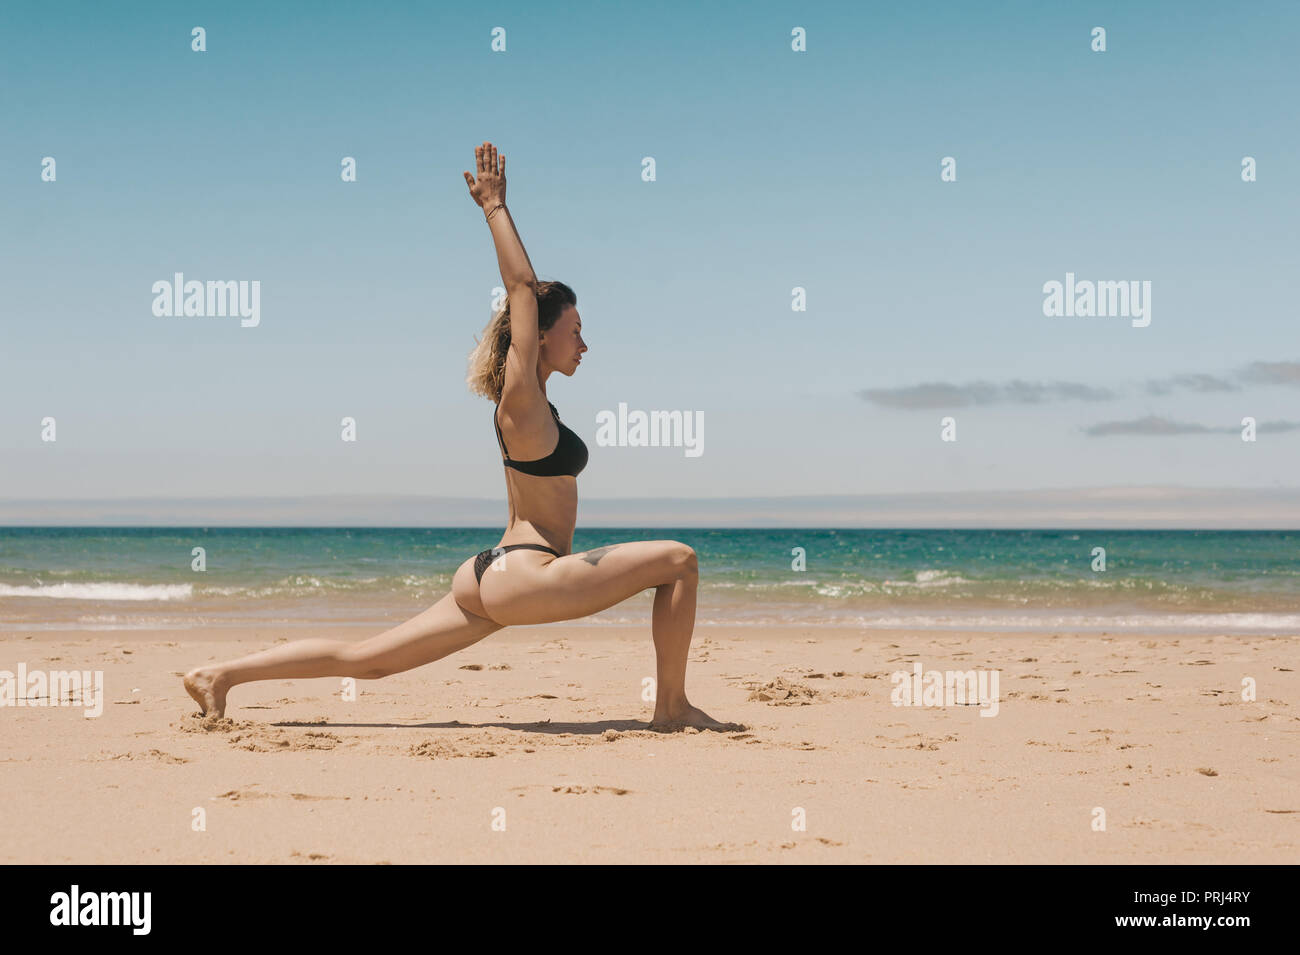 Side view of young woman in black bikini standing dans Warrior yoga position on sandy beach Photo Stock